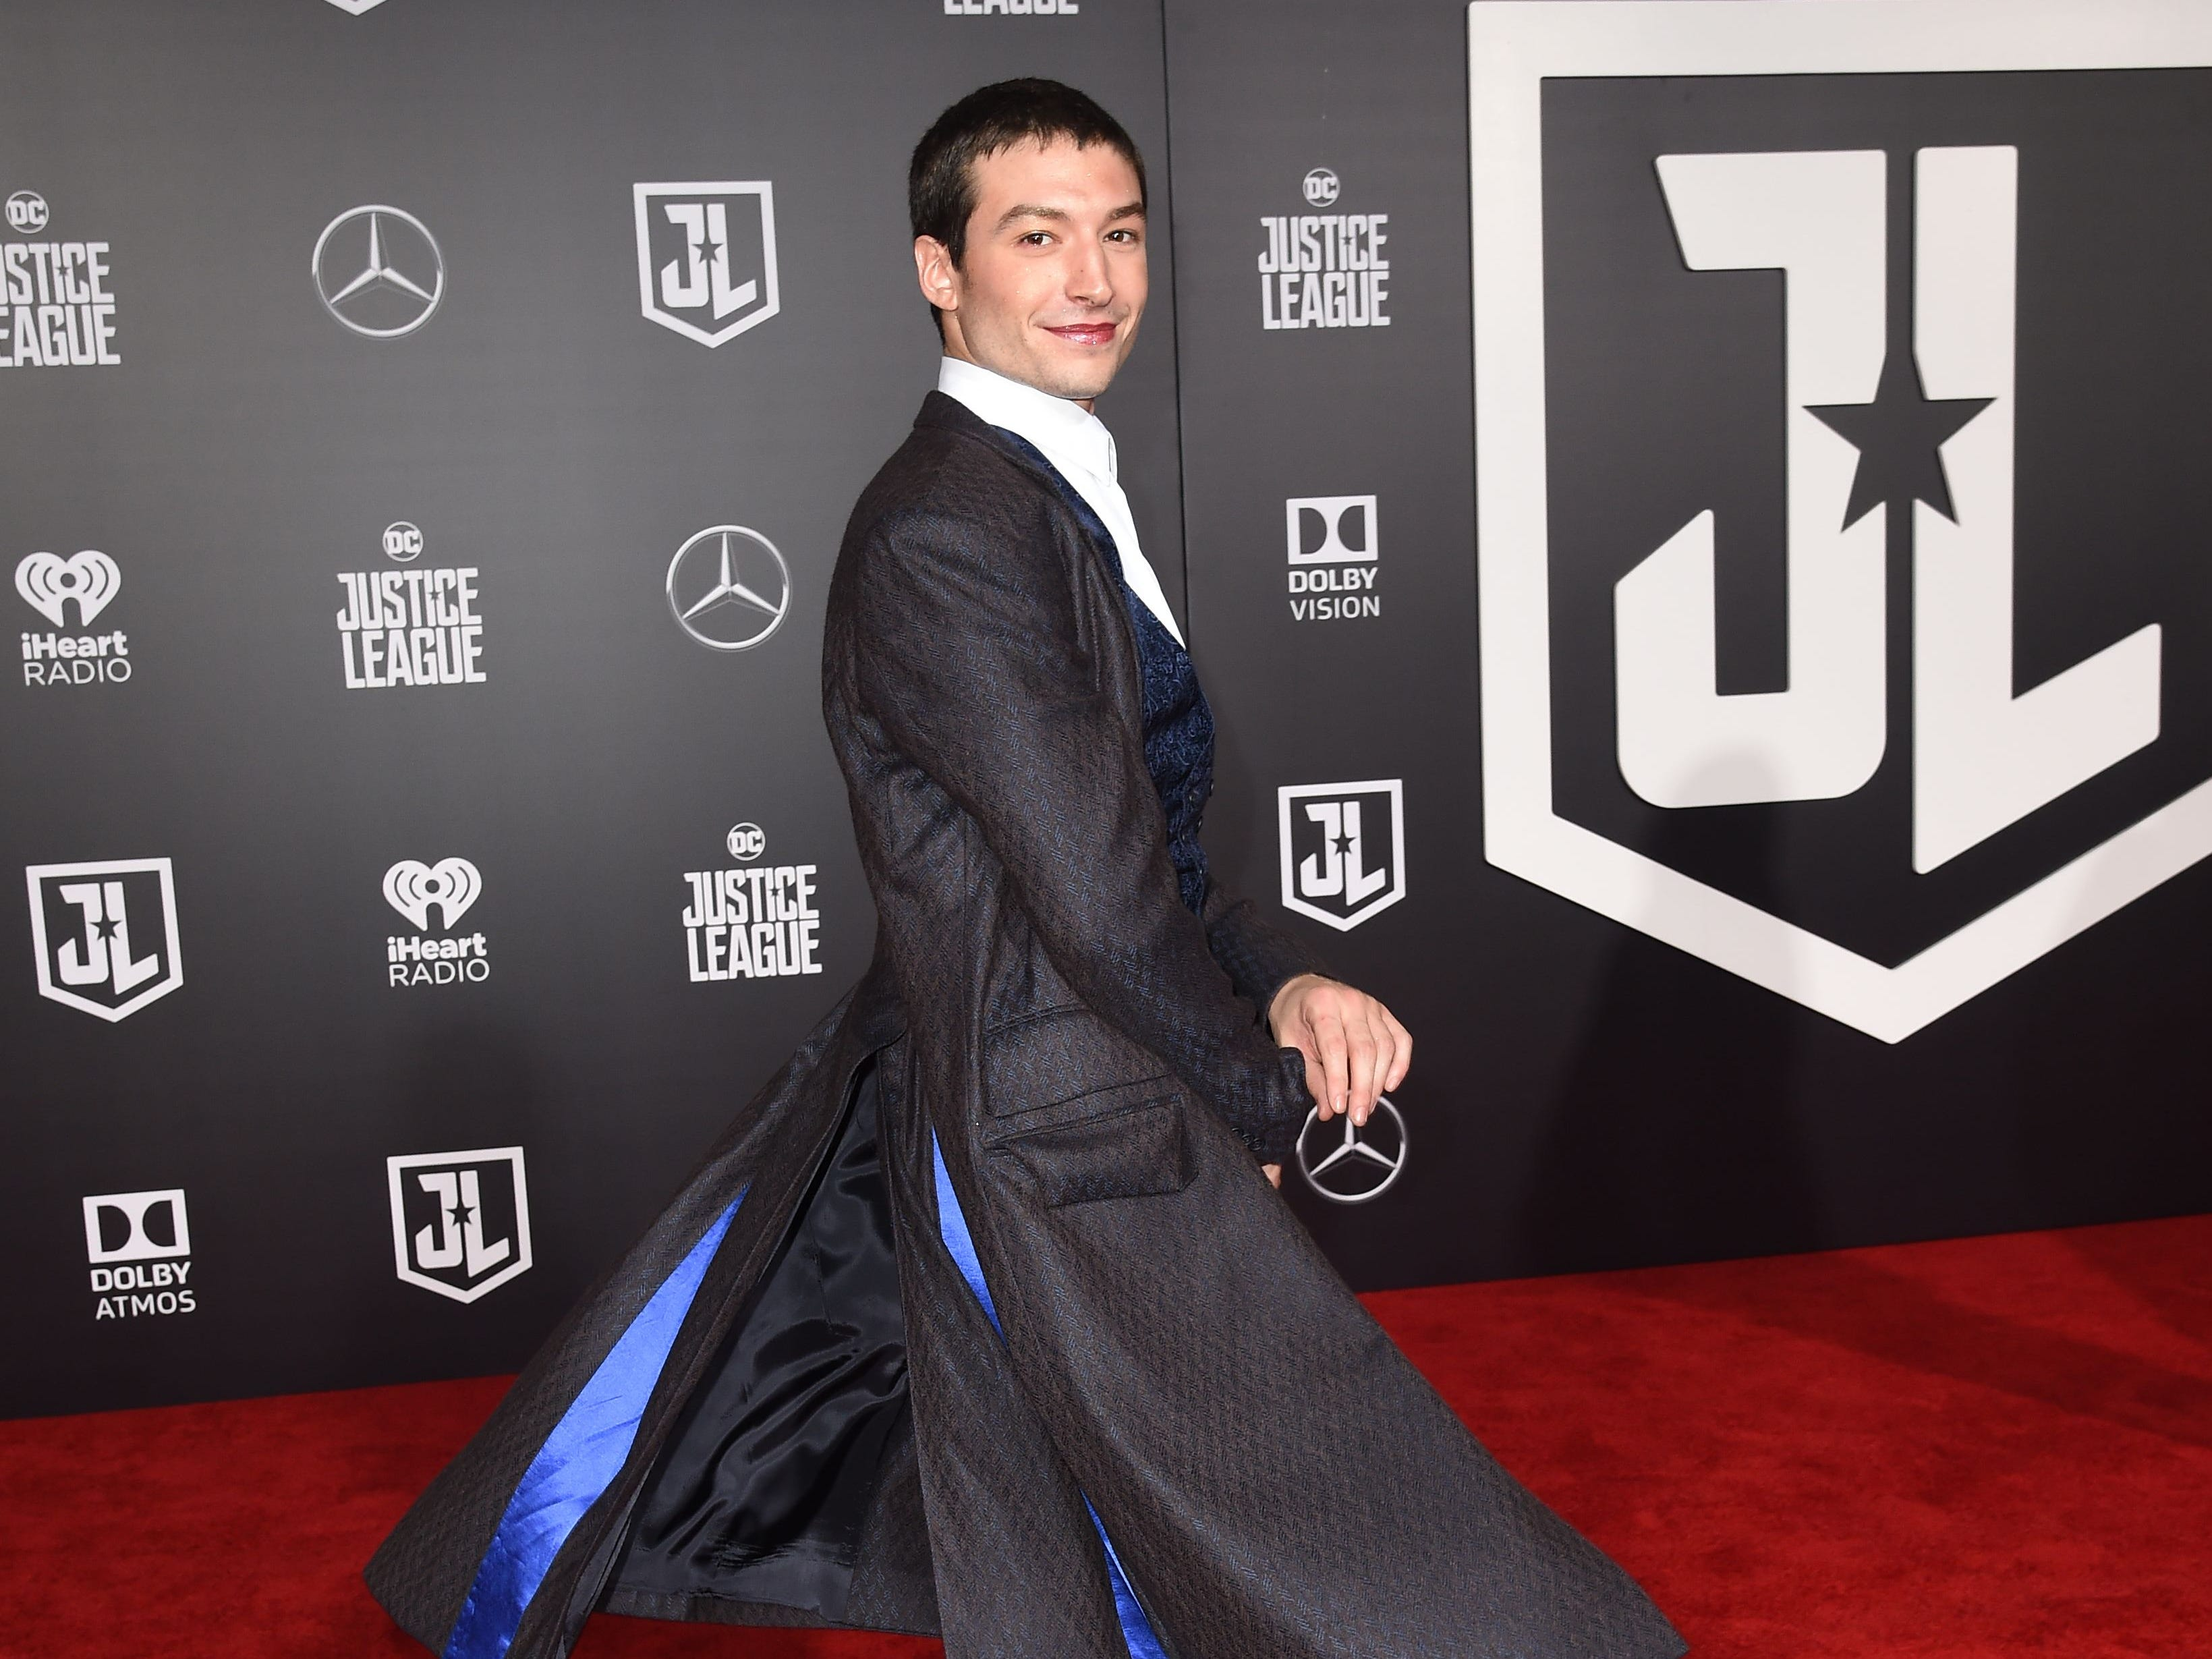 """Actor Ezra Miller arrives for the world premiere of Warner Bros. Pictures' Justice League,"""" November 13, 2017 at the Dolby Theater in Hollywood, California.  / AFP PHOTO / Robyn BeckROBYN BECK/AFP/Getty Images ORG XMIT: Film prem ORIG FILE ID: AFP_U90EZ"""